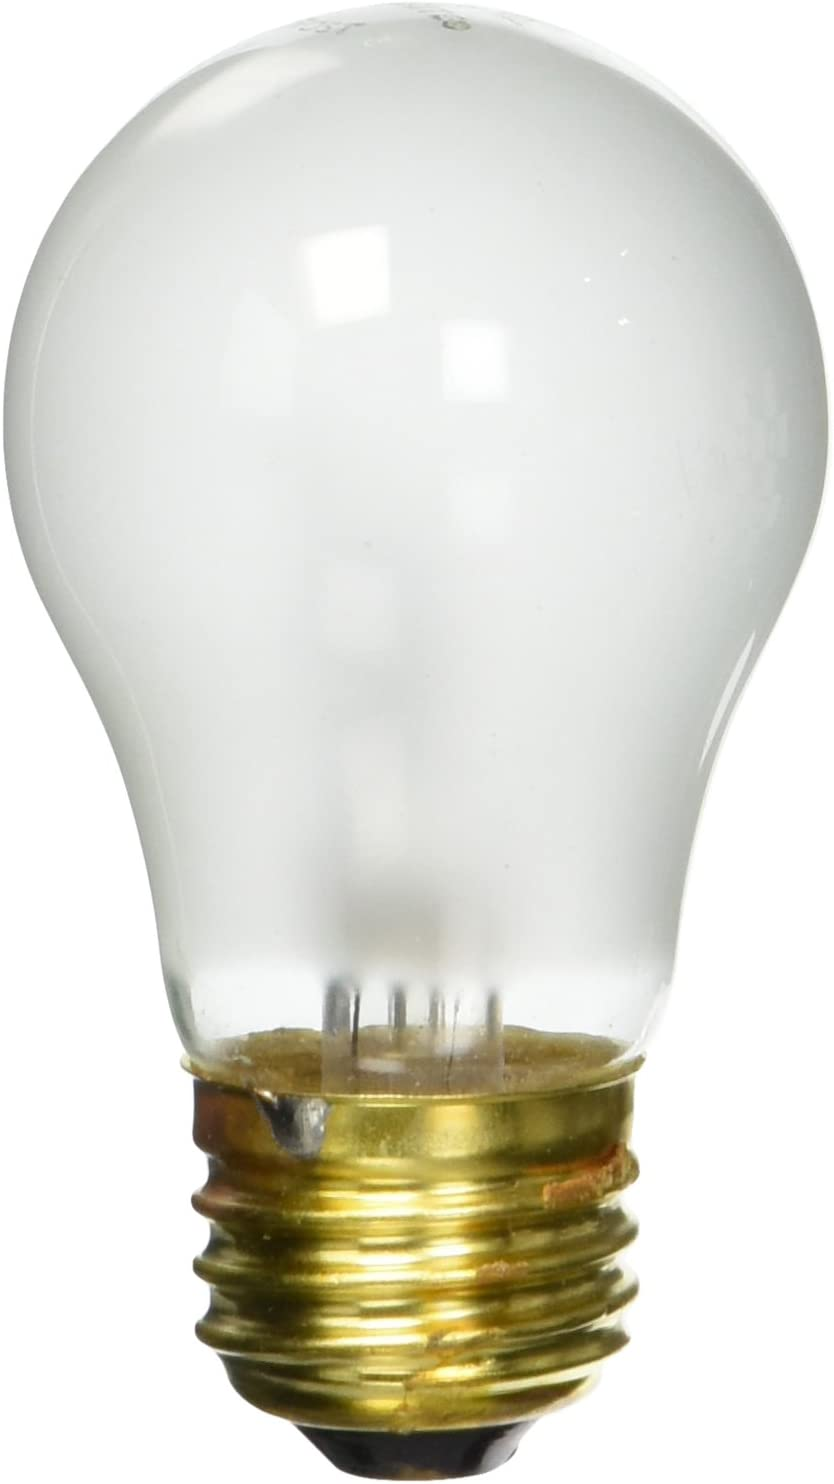 Bulbrite 25A15F 25-Watt Incandescent A15 Appliance Bulb, Frost